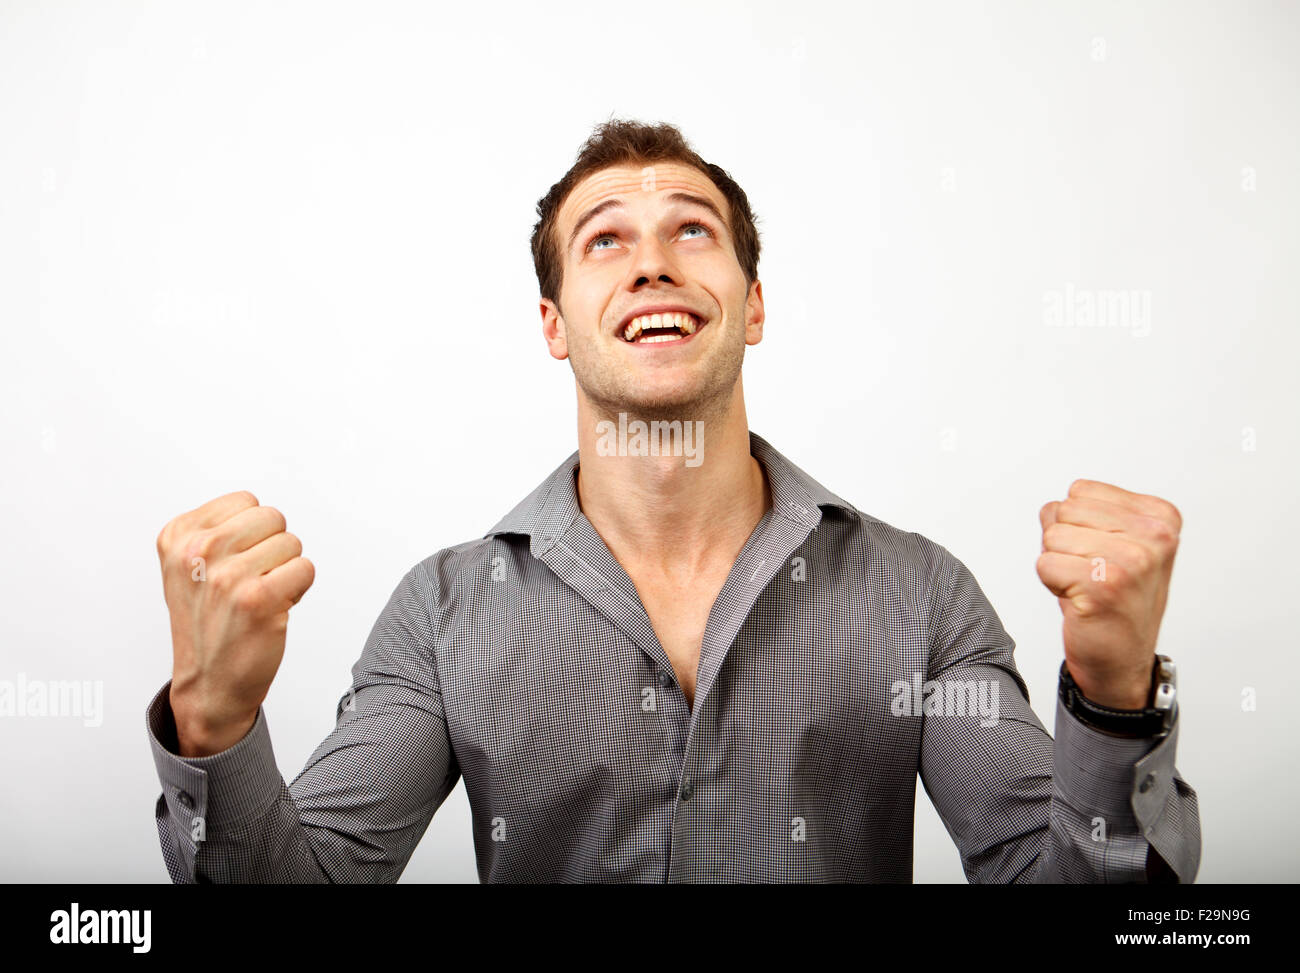 Win or succes concept - joyful man happy for his luck - Stock Image